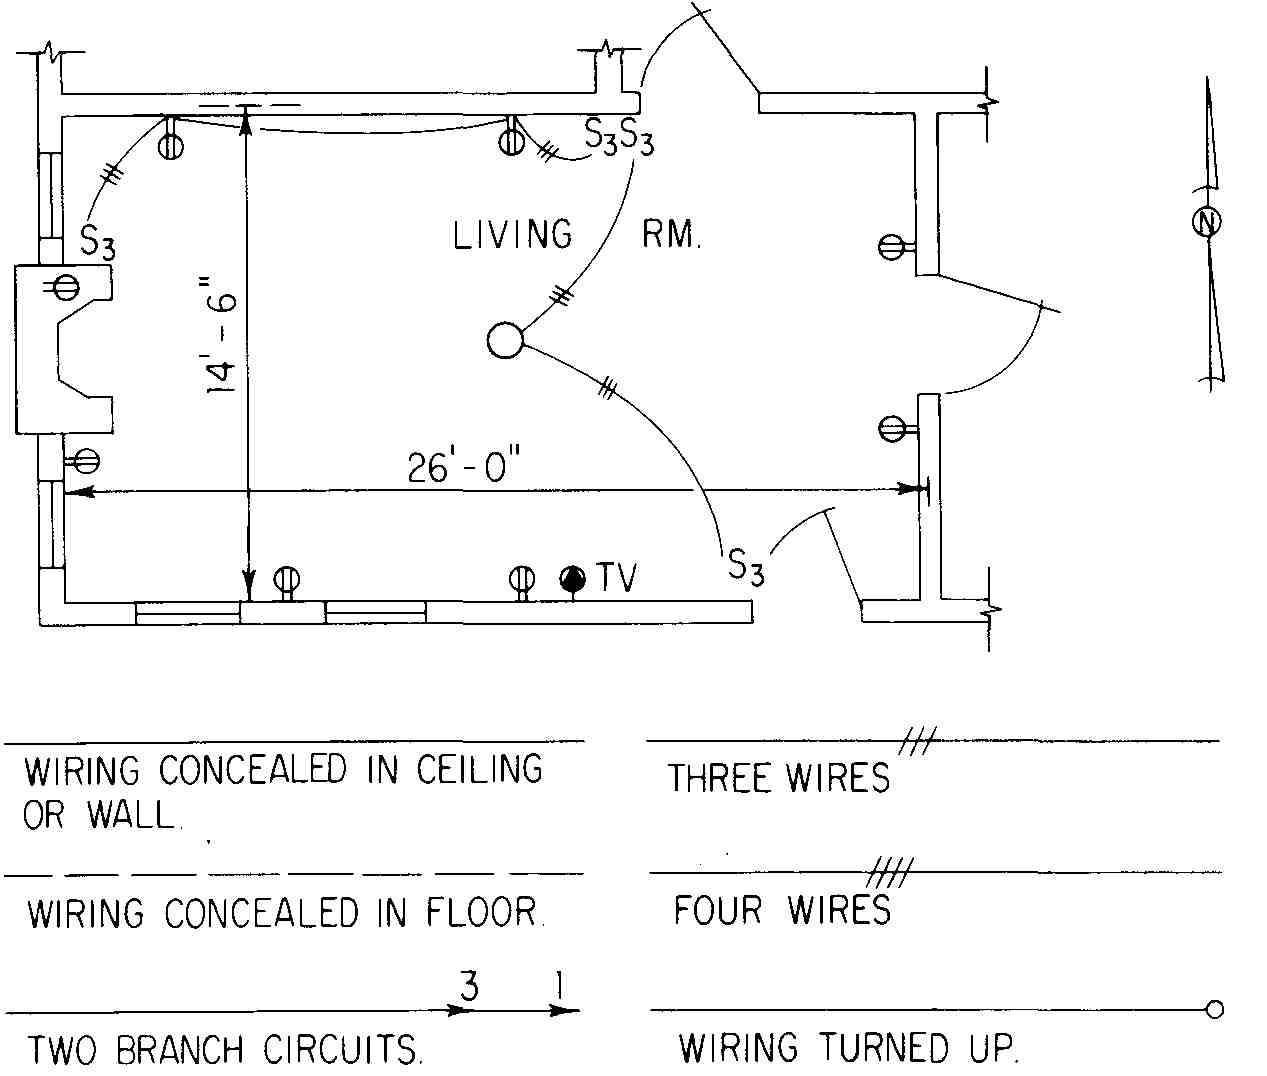 Surprising Electrical Drawing For Architectural Plans Wiring Cloud Usnesfoxcilixyz